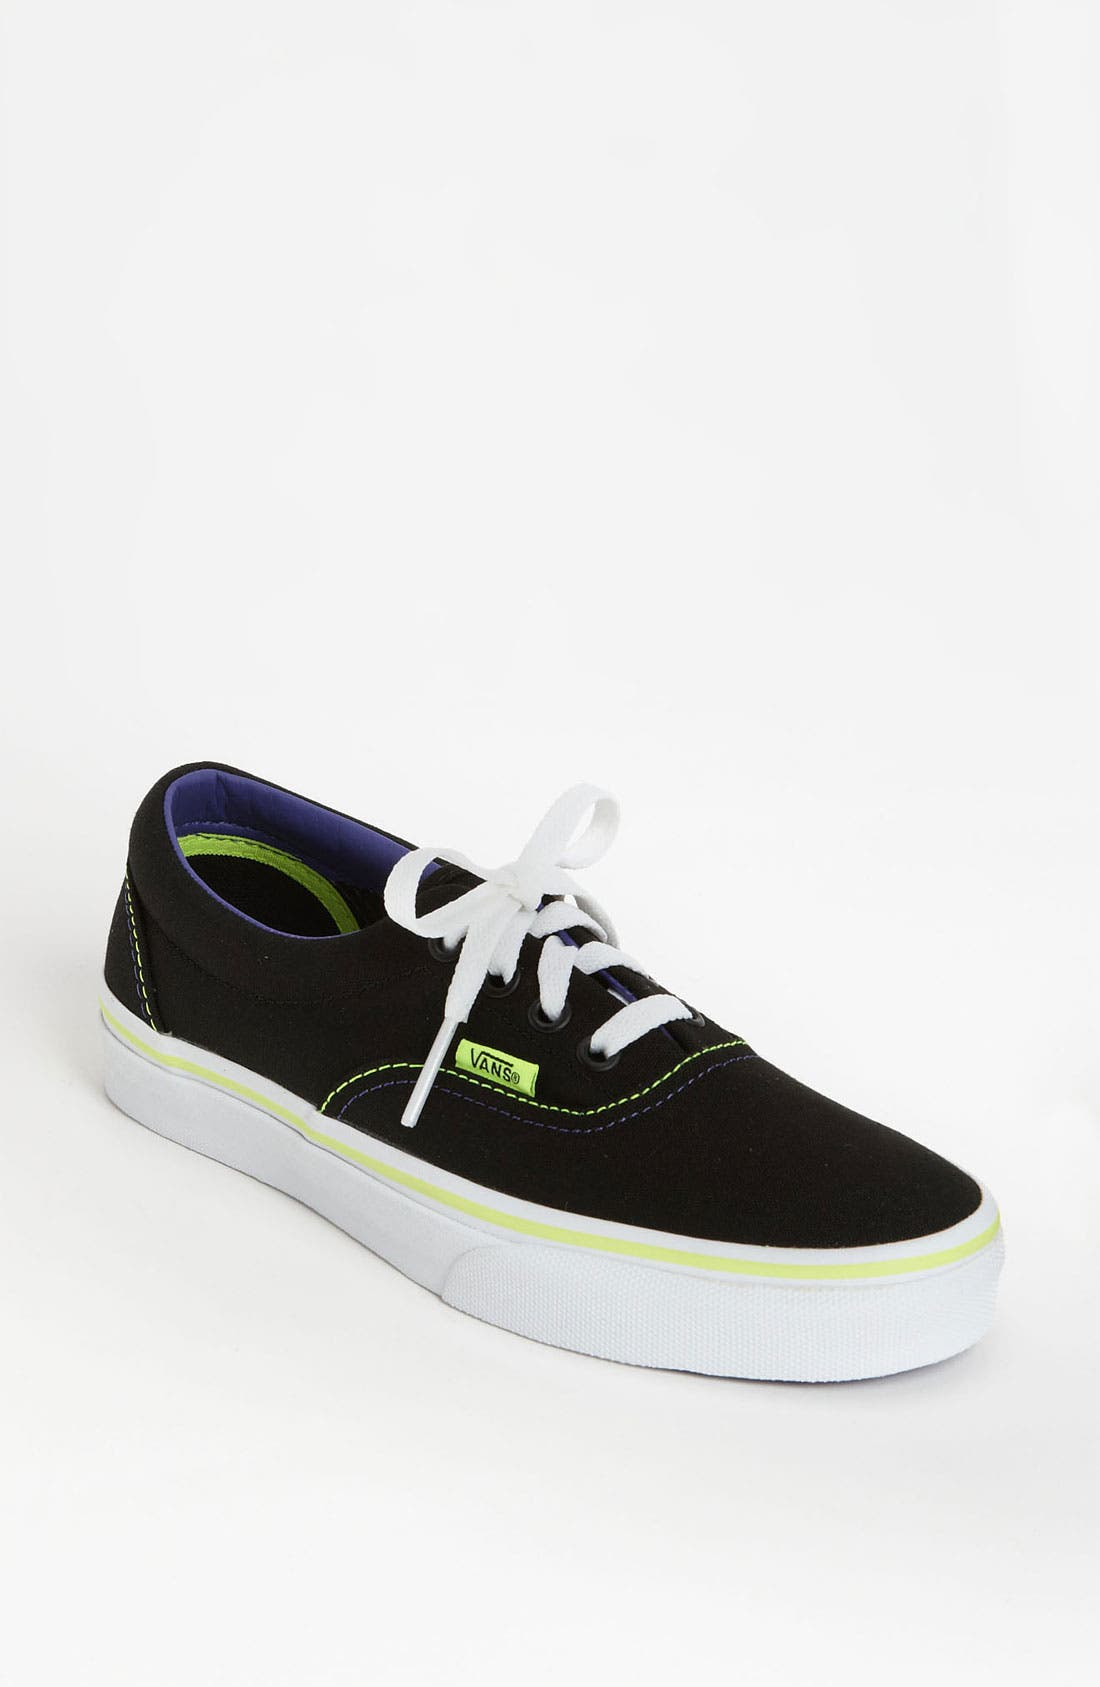 Alternate Image 1 Selected - Vans 'Era - Pop' Sneaker (Women)